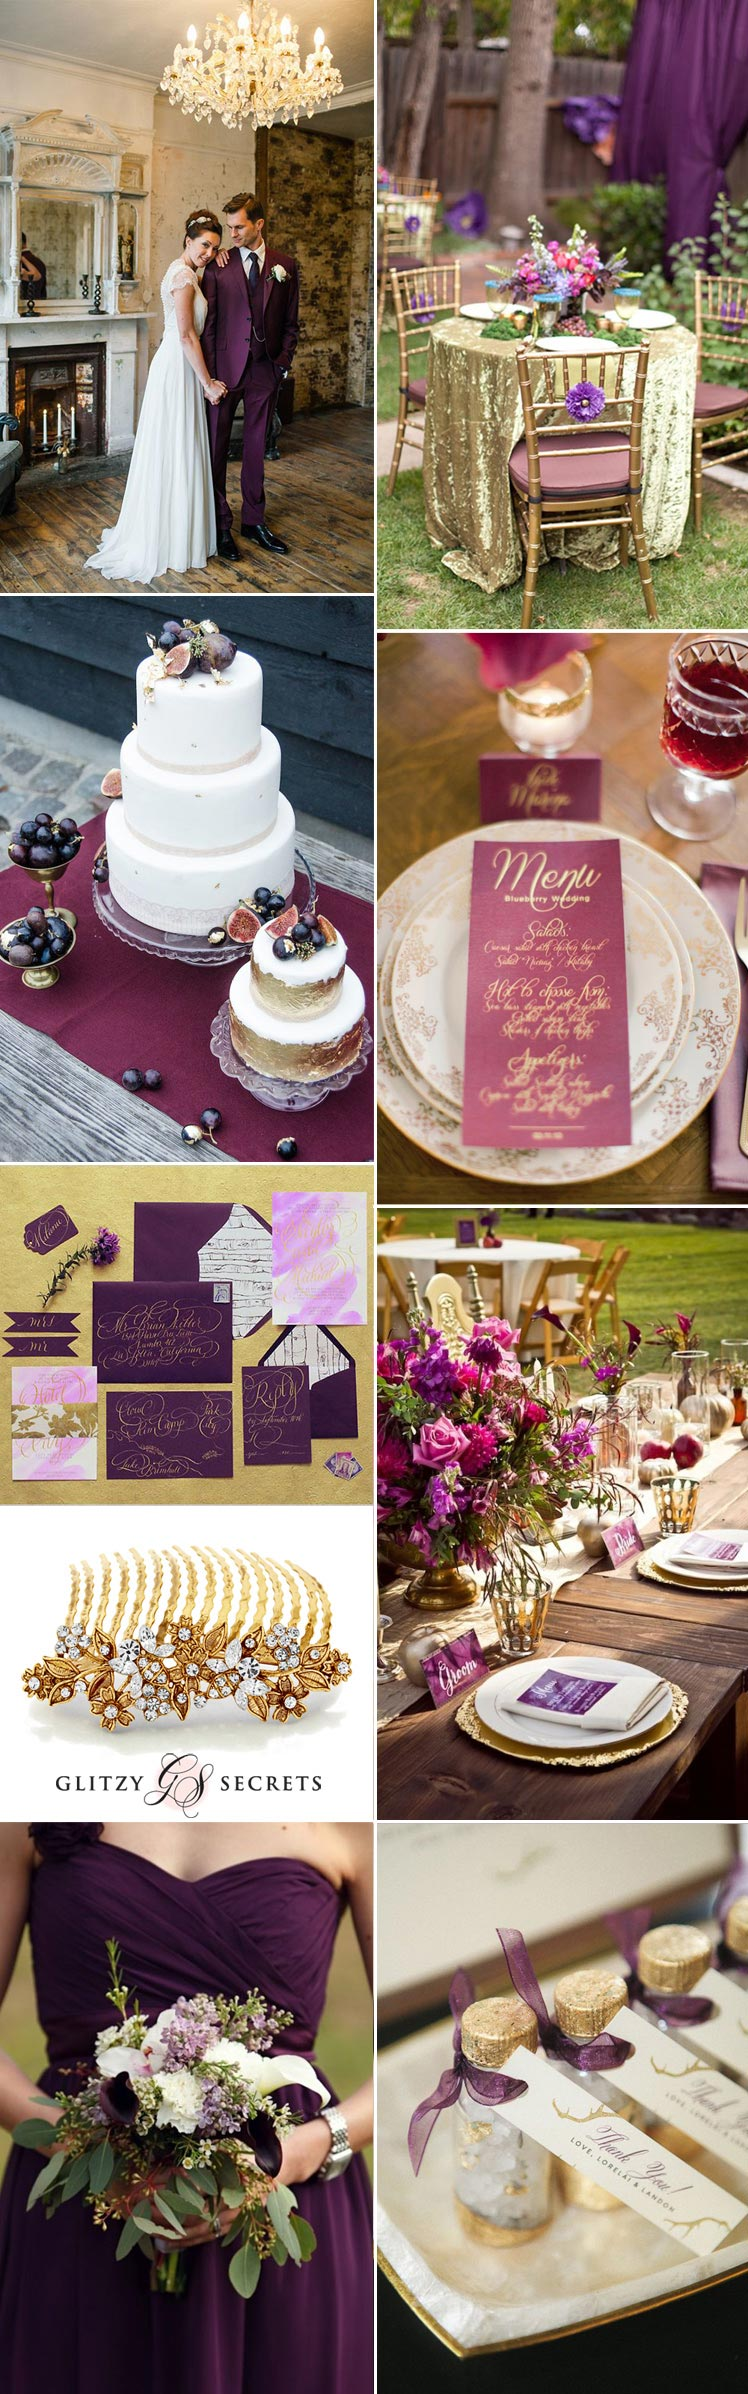 Gold and plum ideas for your wedding theme